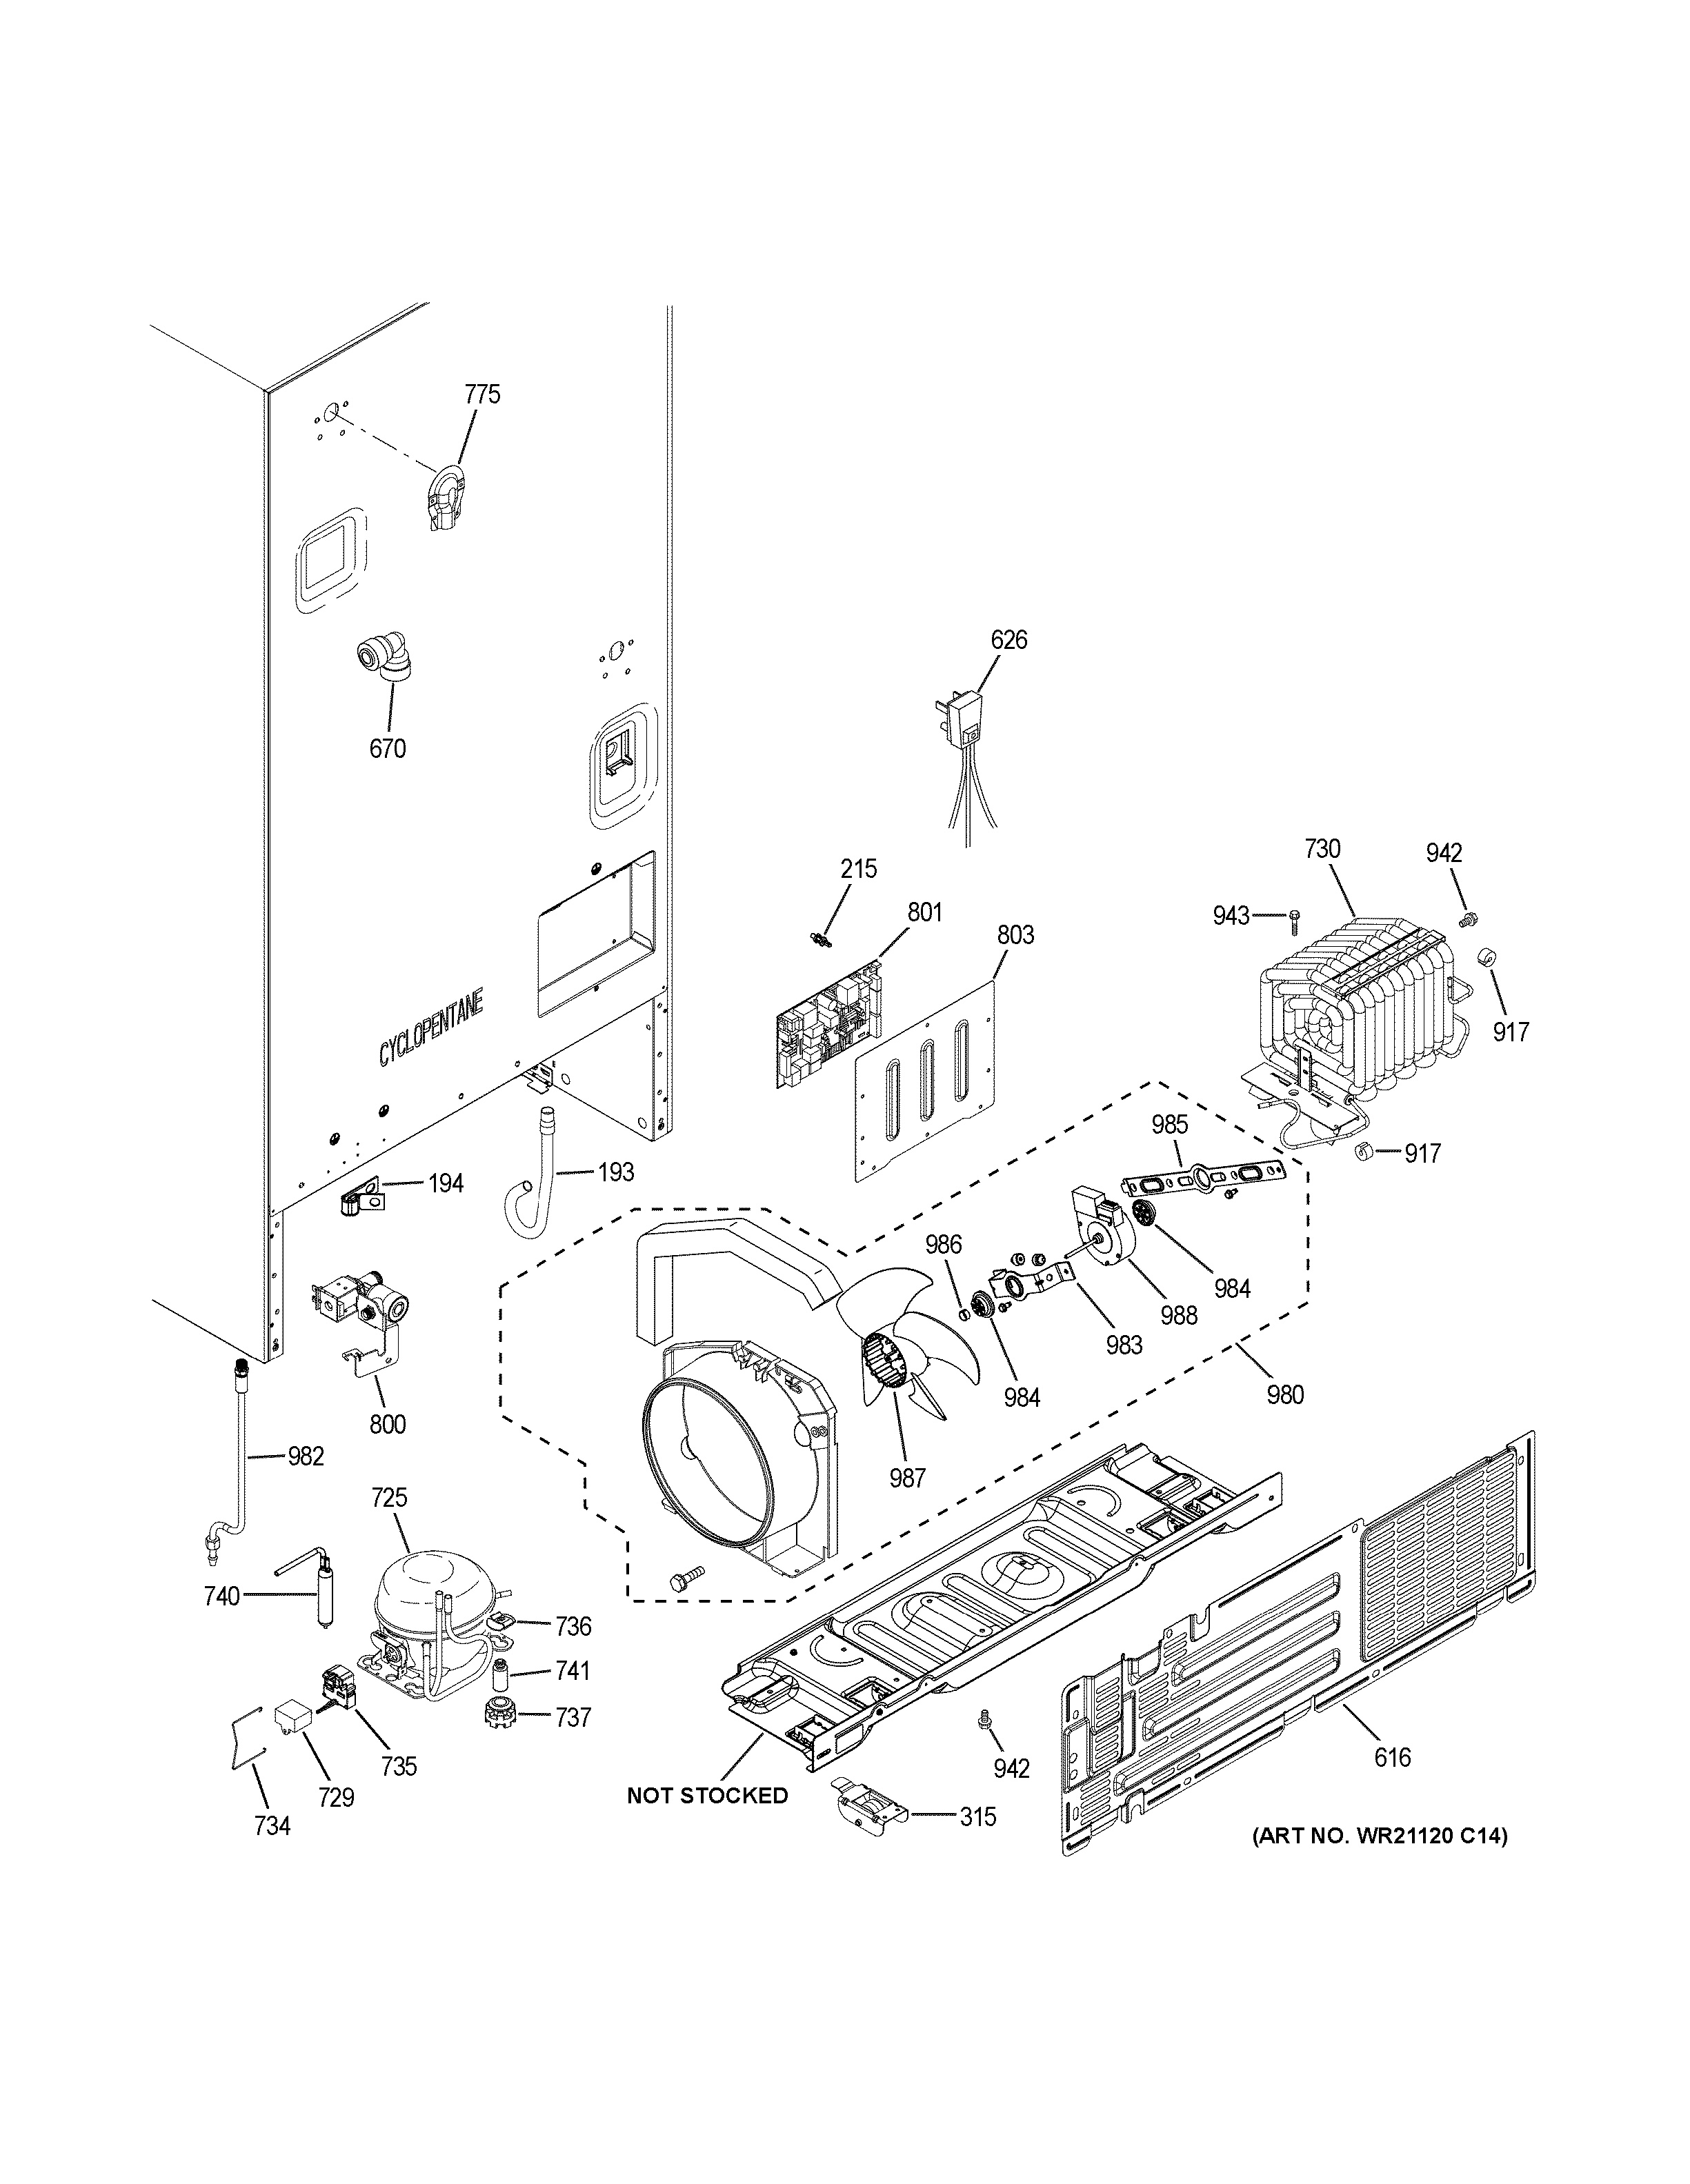 Assembly View For Machine Compartment